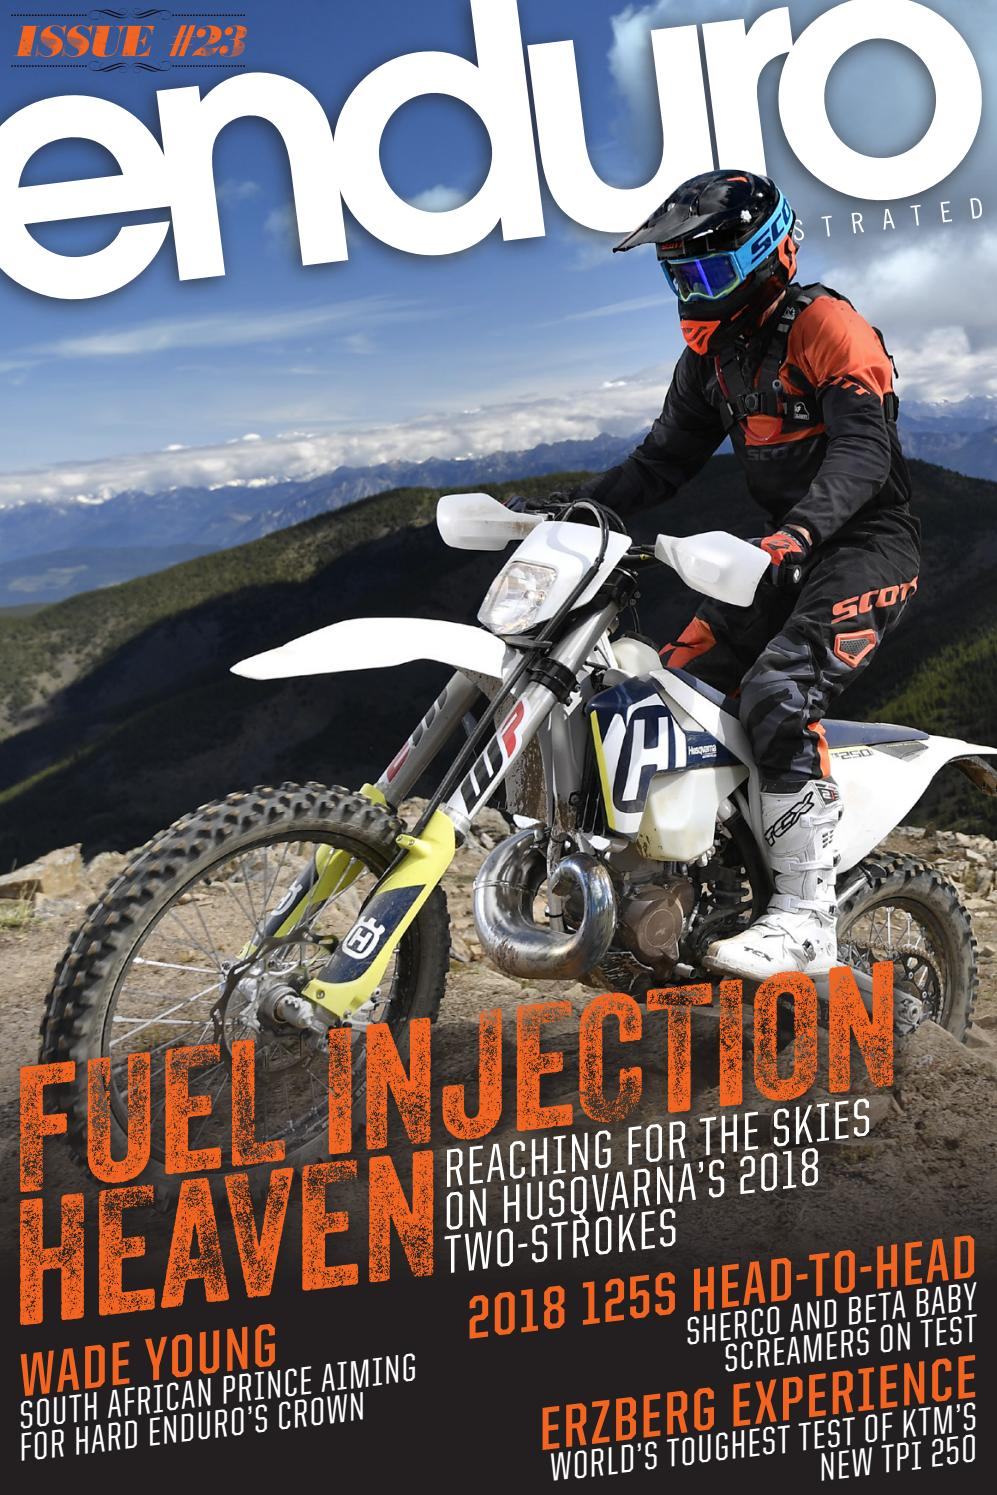 Enduro Illustrated #23 July 2017 by Enduro illustrated - issuu